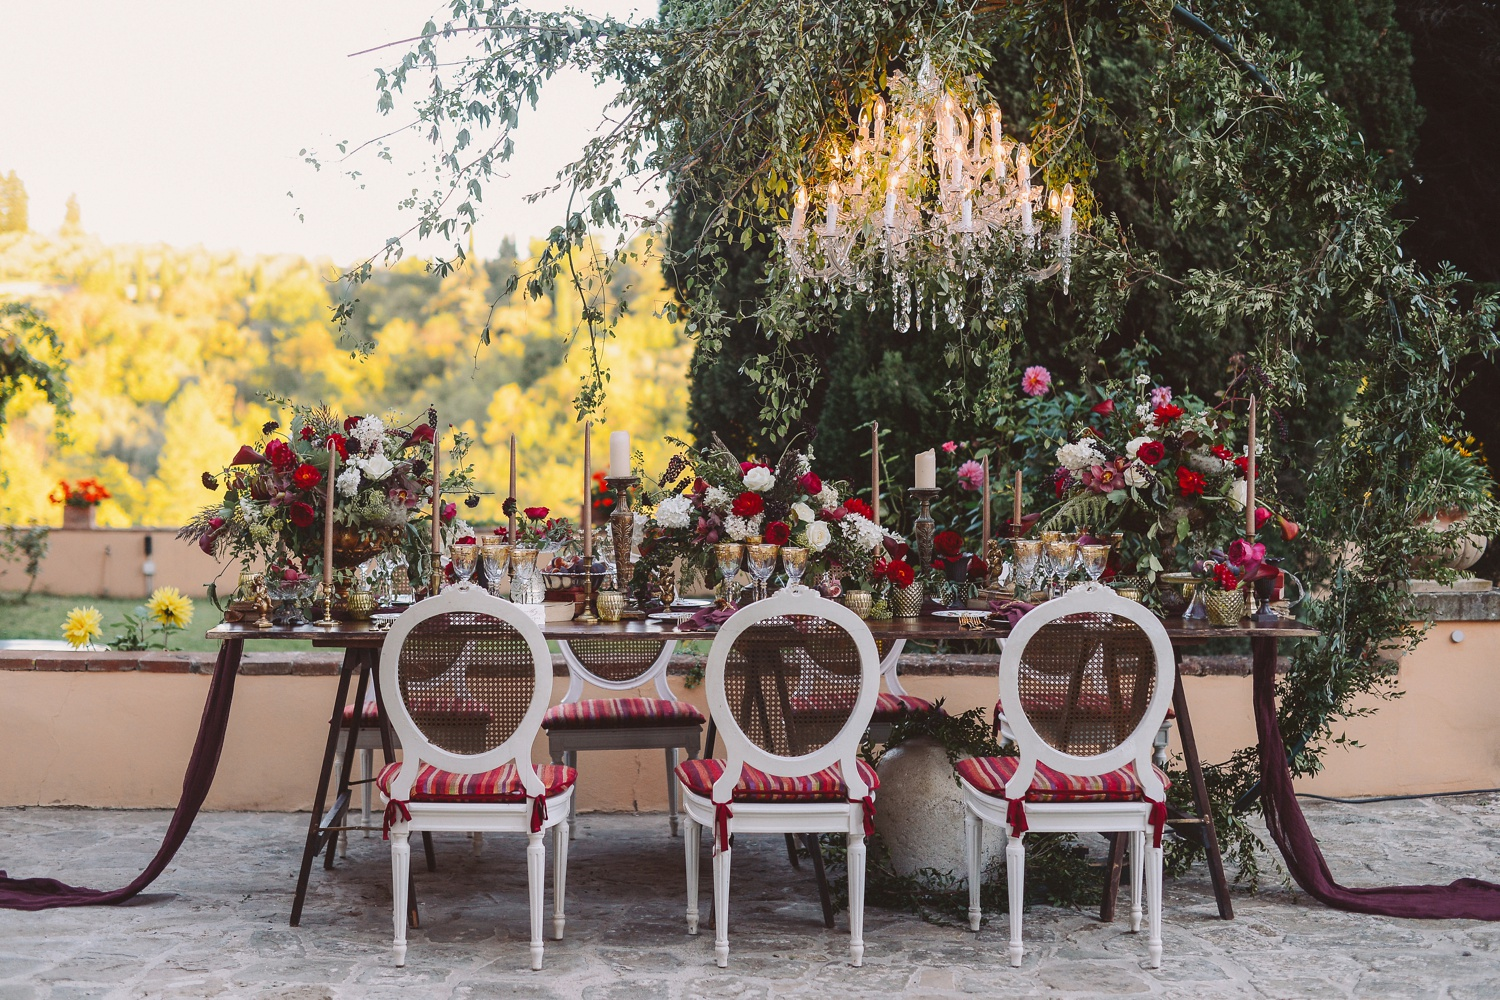 wedding-photographer-florence-fourseason-tuscany_1284.jpg